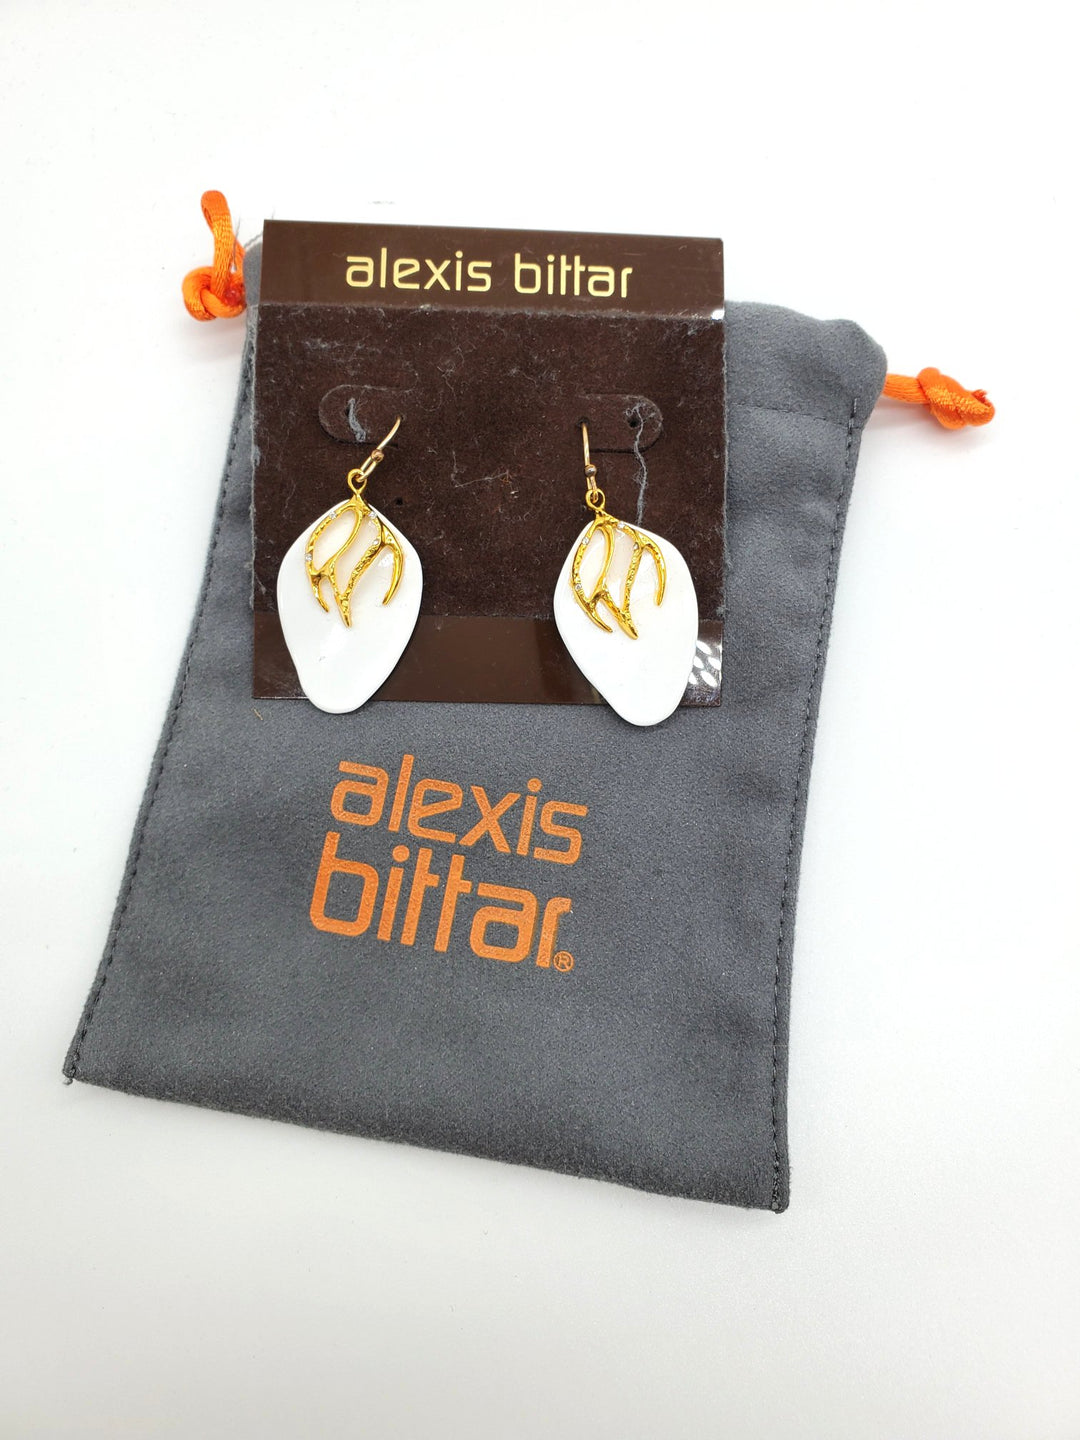 Primary Photo - BRAND: ALEXIS BITTAR <BR>STYLE: EARRINGS <BR>COLOR: MULTI <BR>SKU: 262-26275-62775<BR>AS IS<BR>DESIGNER ITEM FINAL SALE